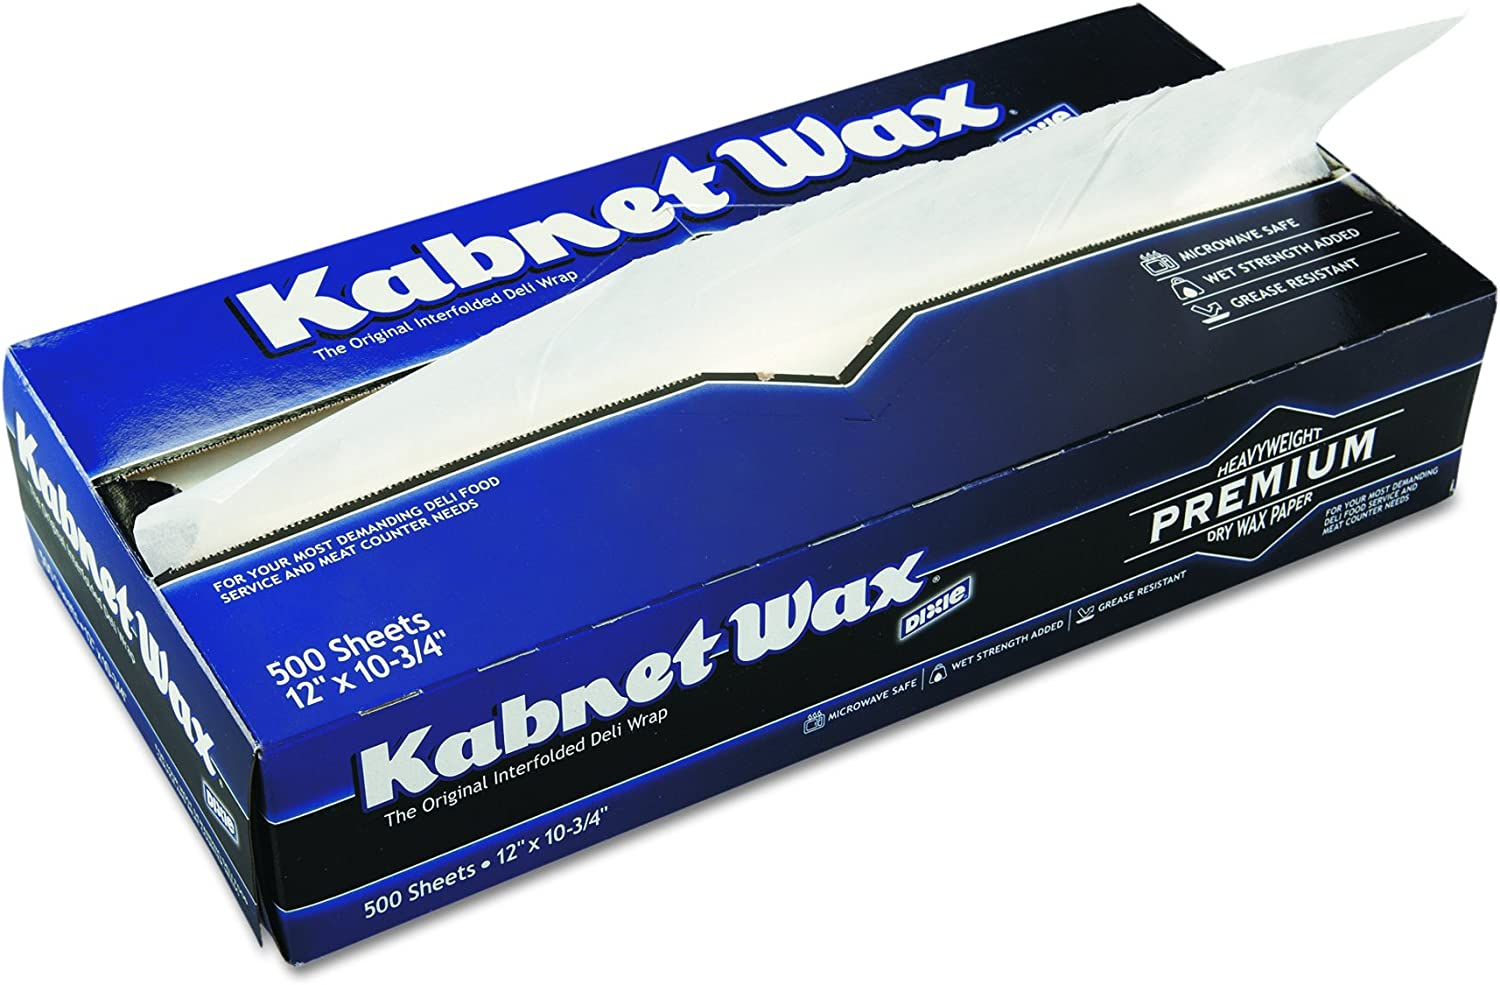 Kabnet Wax Heavy-Weight Interfolded Dry Waxed Deli Paper by GP PRO (Georgia-Pacific), 83MASTER , White, 10.75  L x 12  W, 6,000 Count (Case of 12 Boxes, 500 Sheets Per Box)